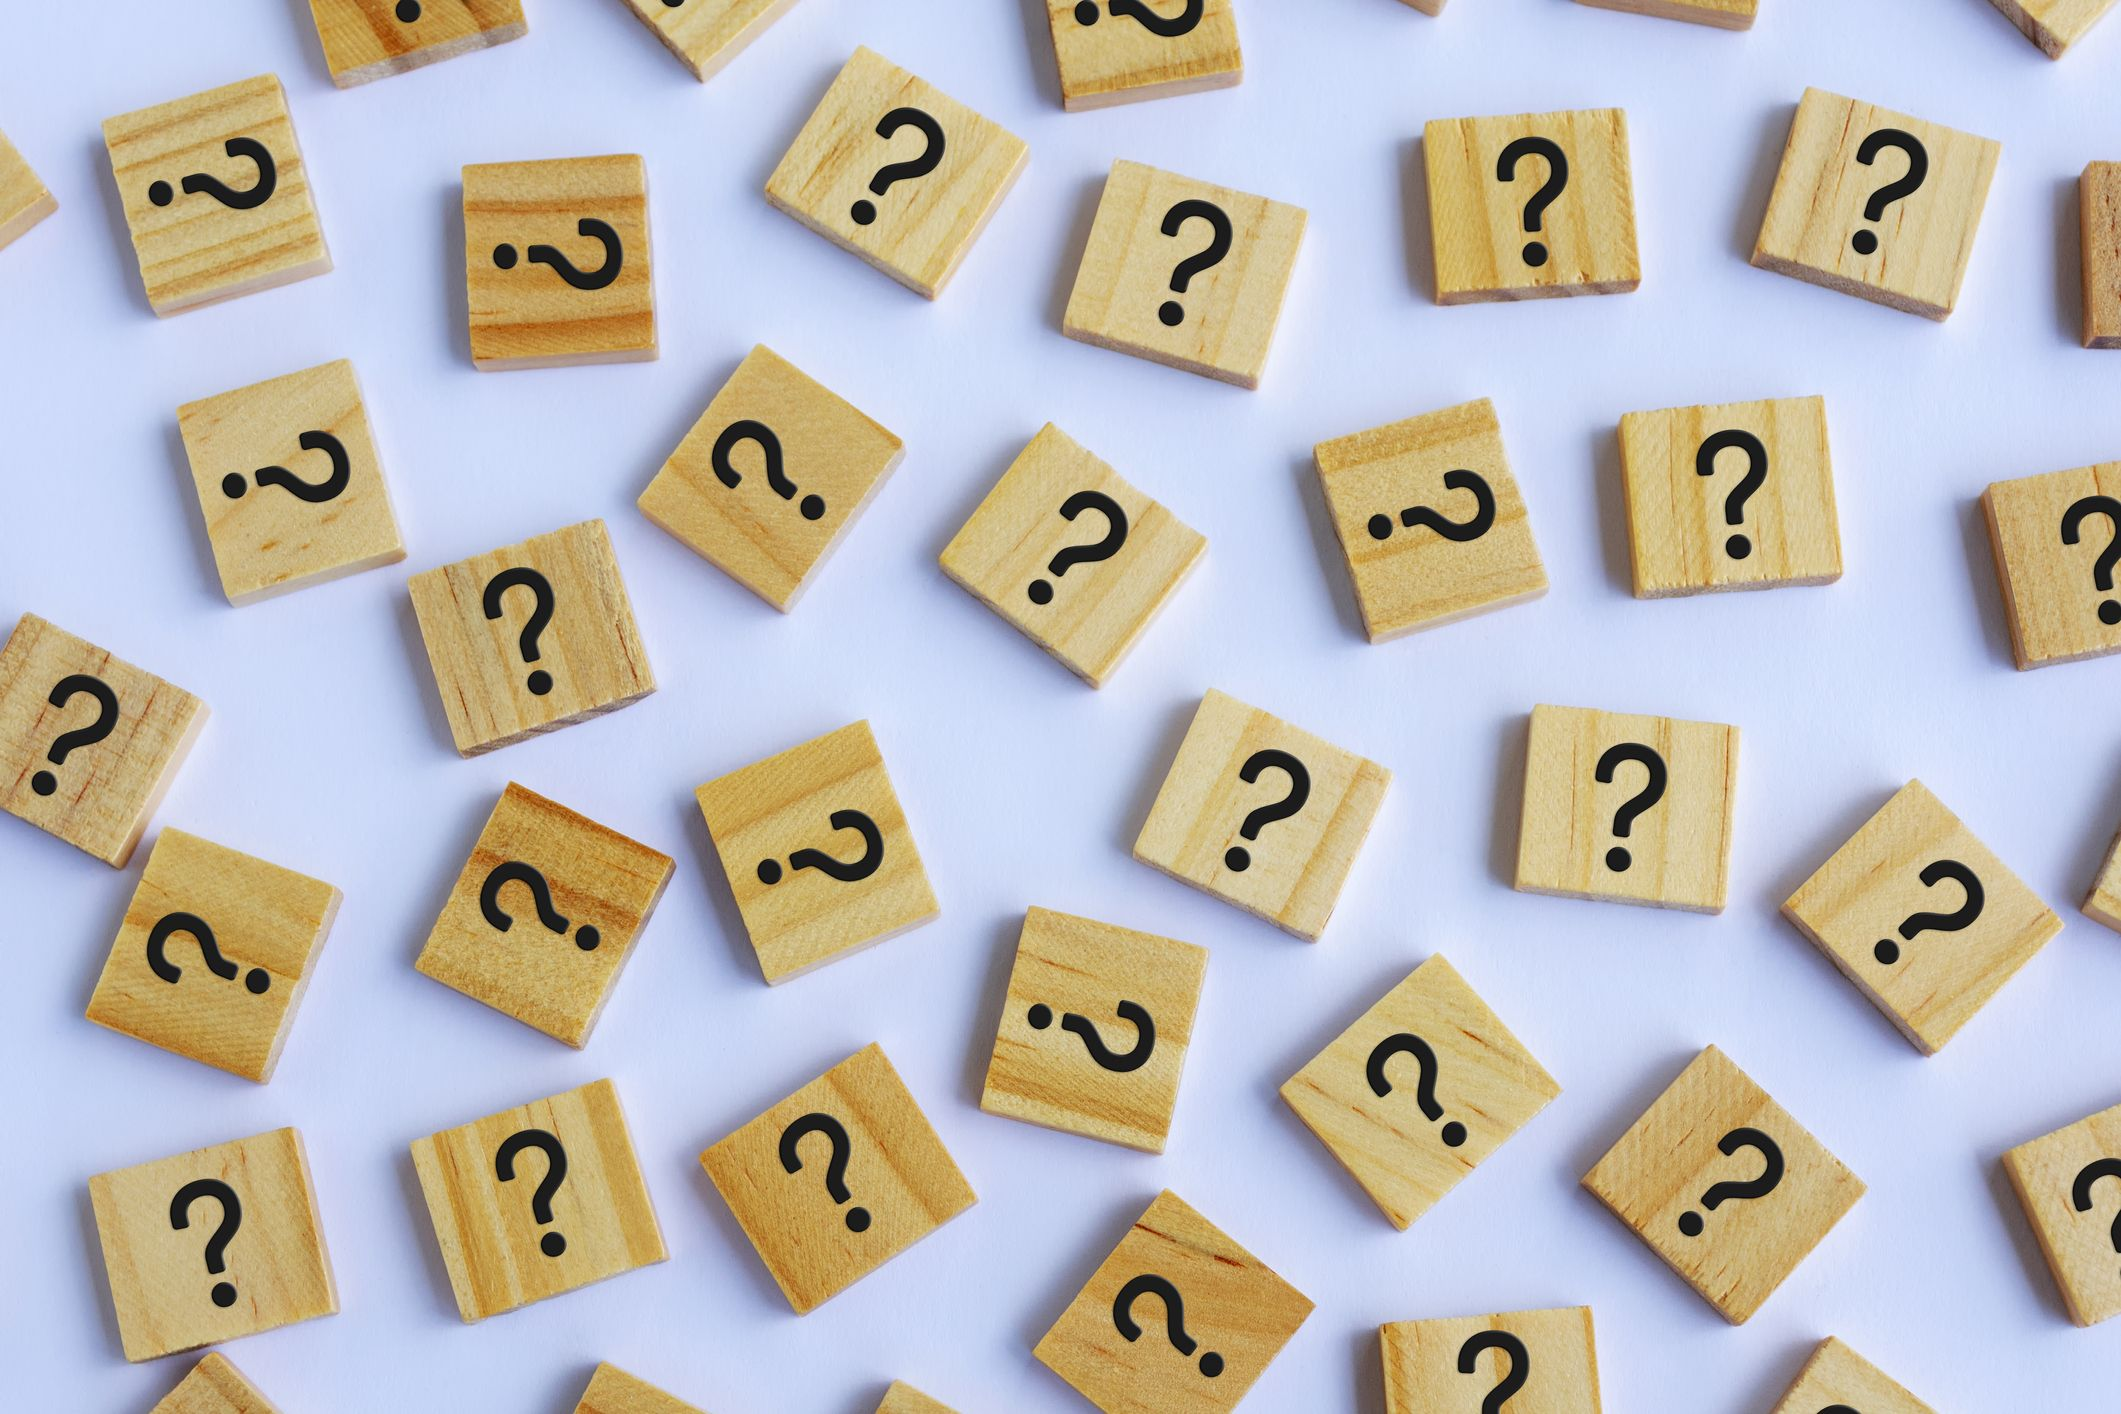 question-marks-on-wooden-block-white-background-royalty-free-image-1578060820